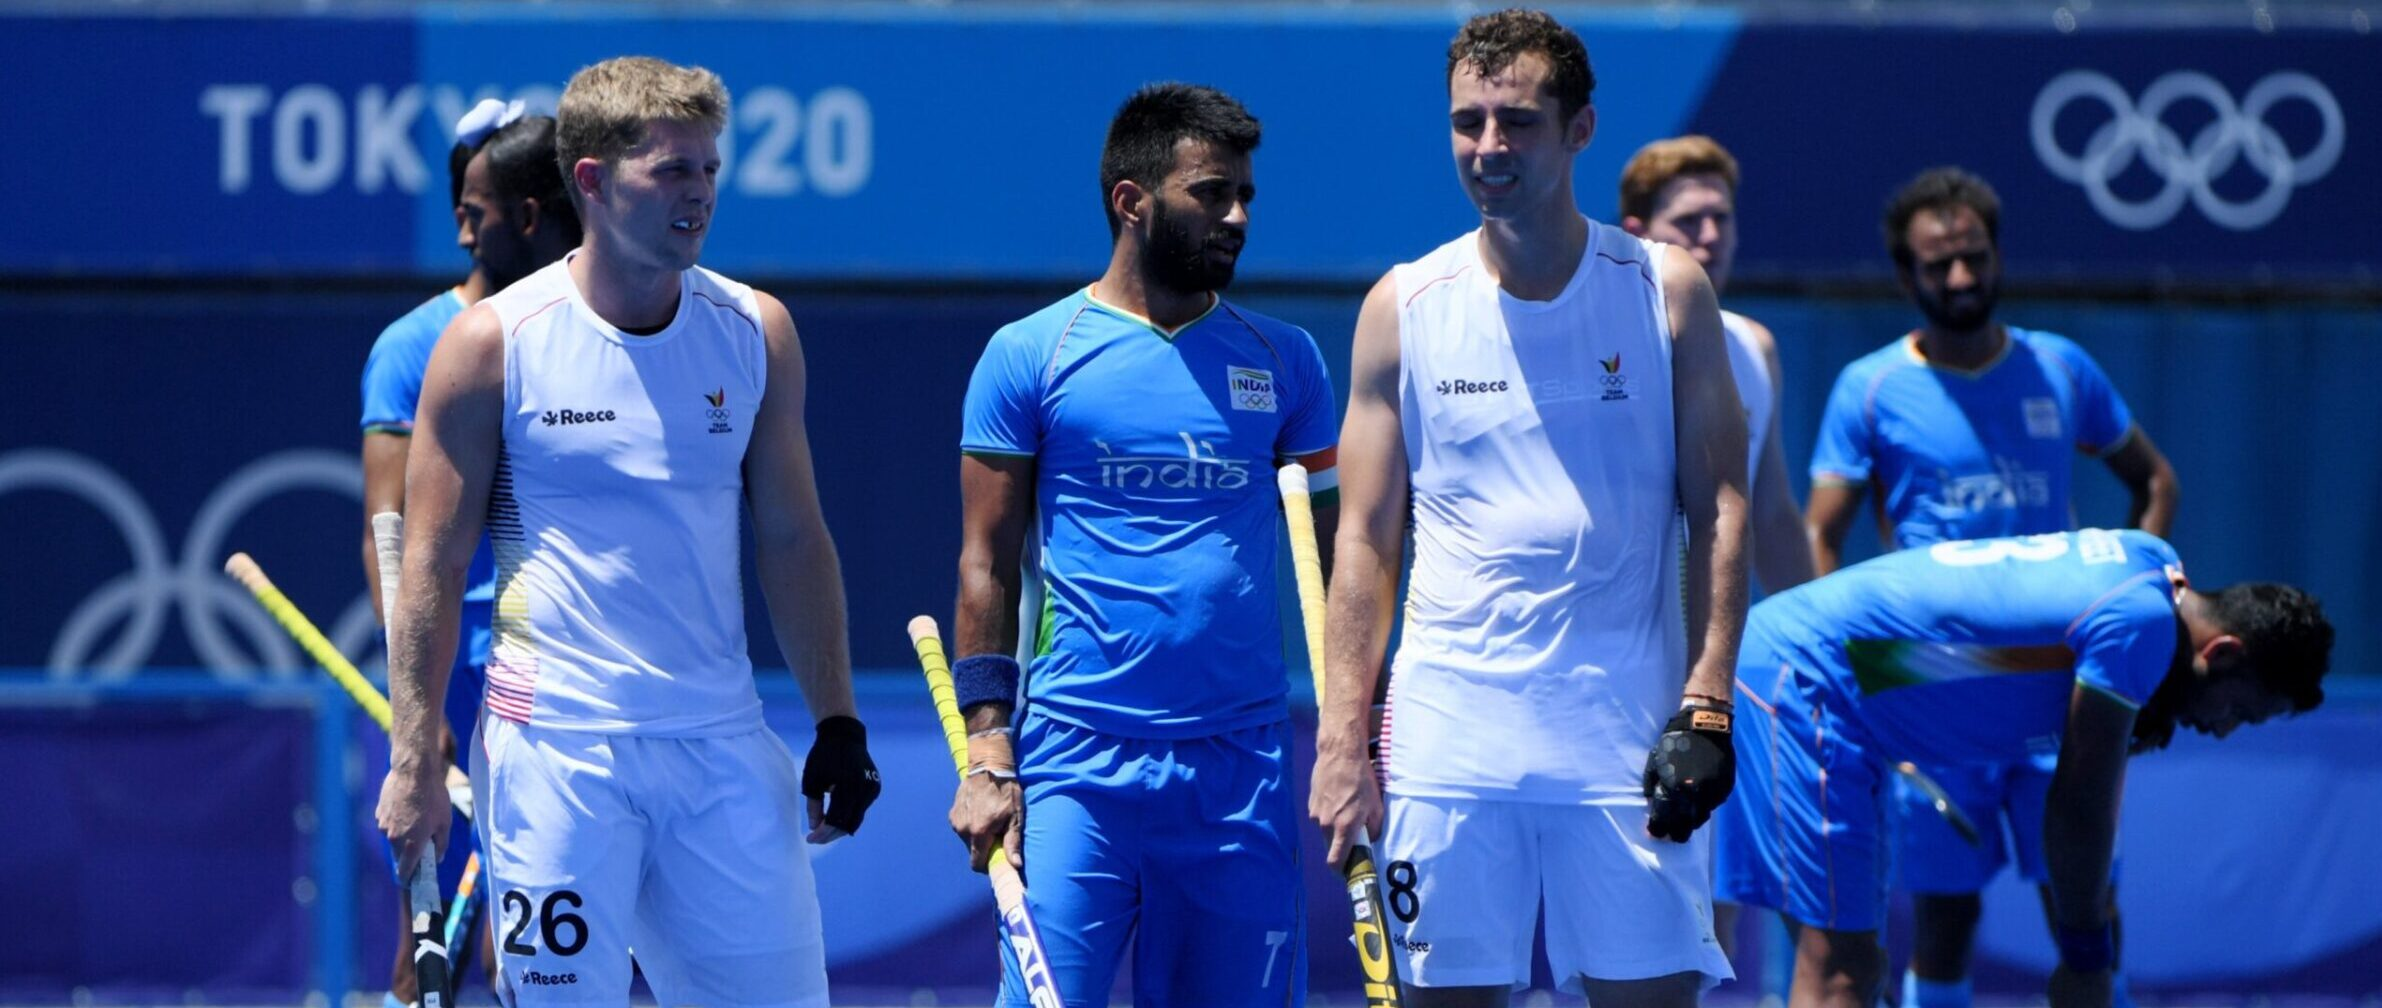 India will now race for Bronze, lost to Belgium 2-5